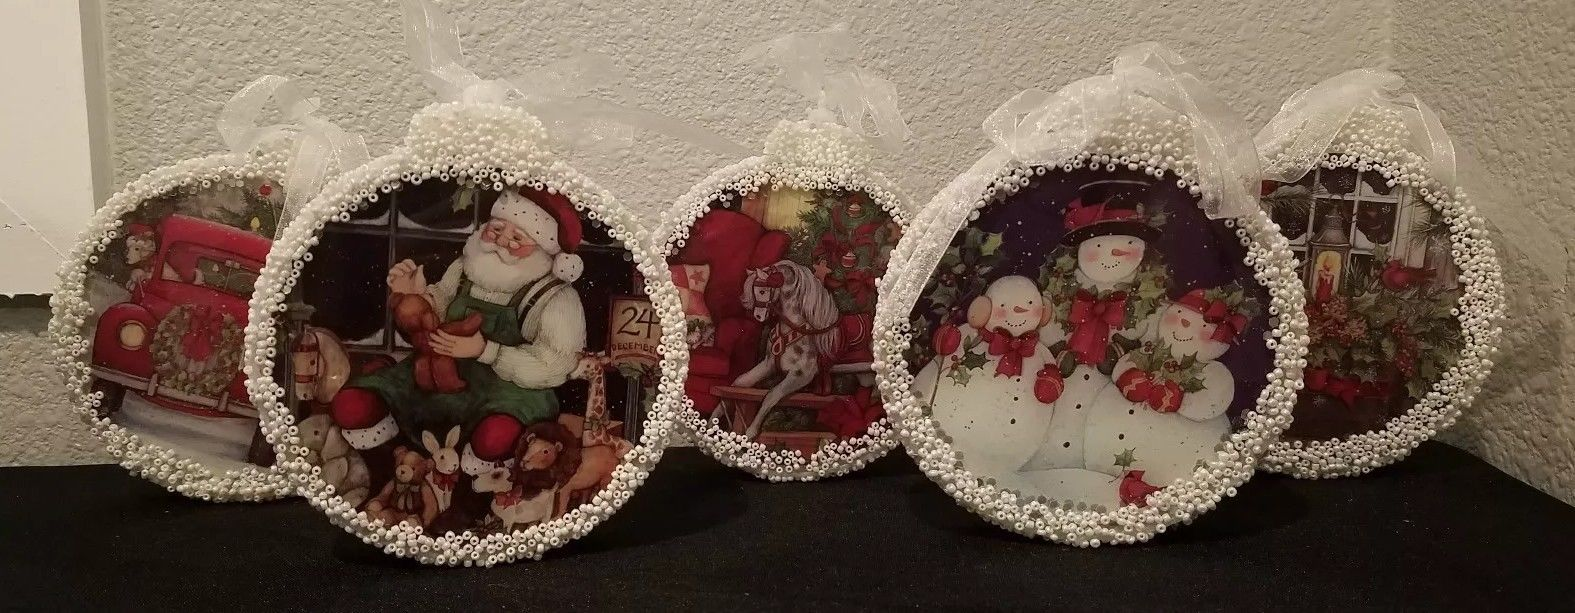 Christmas scene illuminated ornaments by Valerie (set of 5)  $32.00